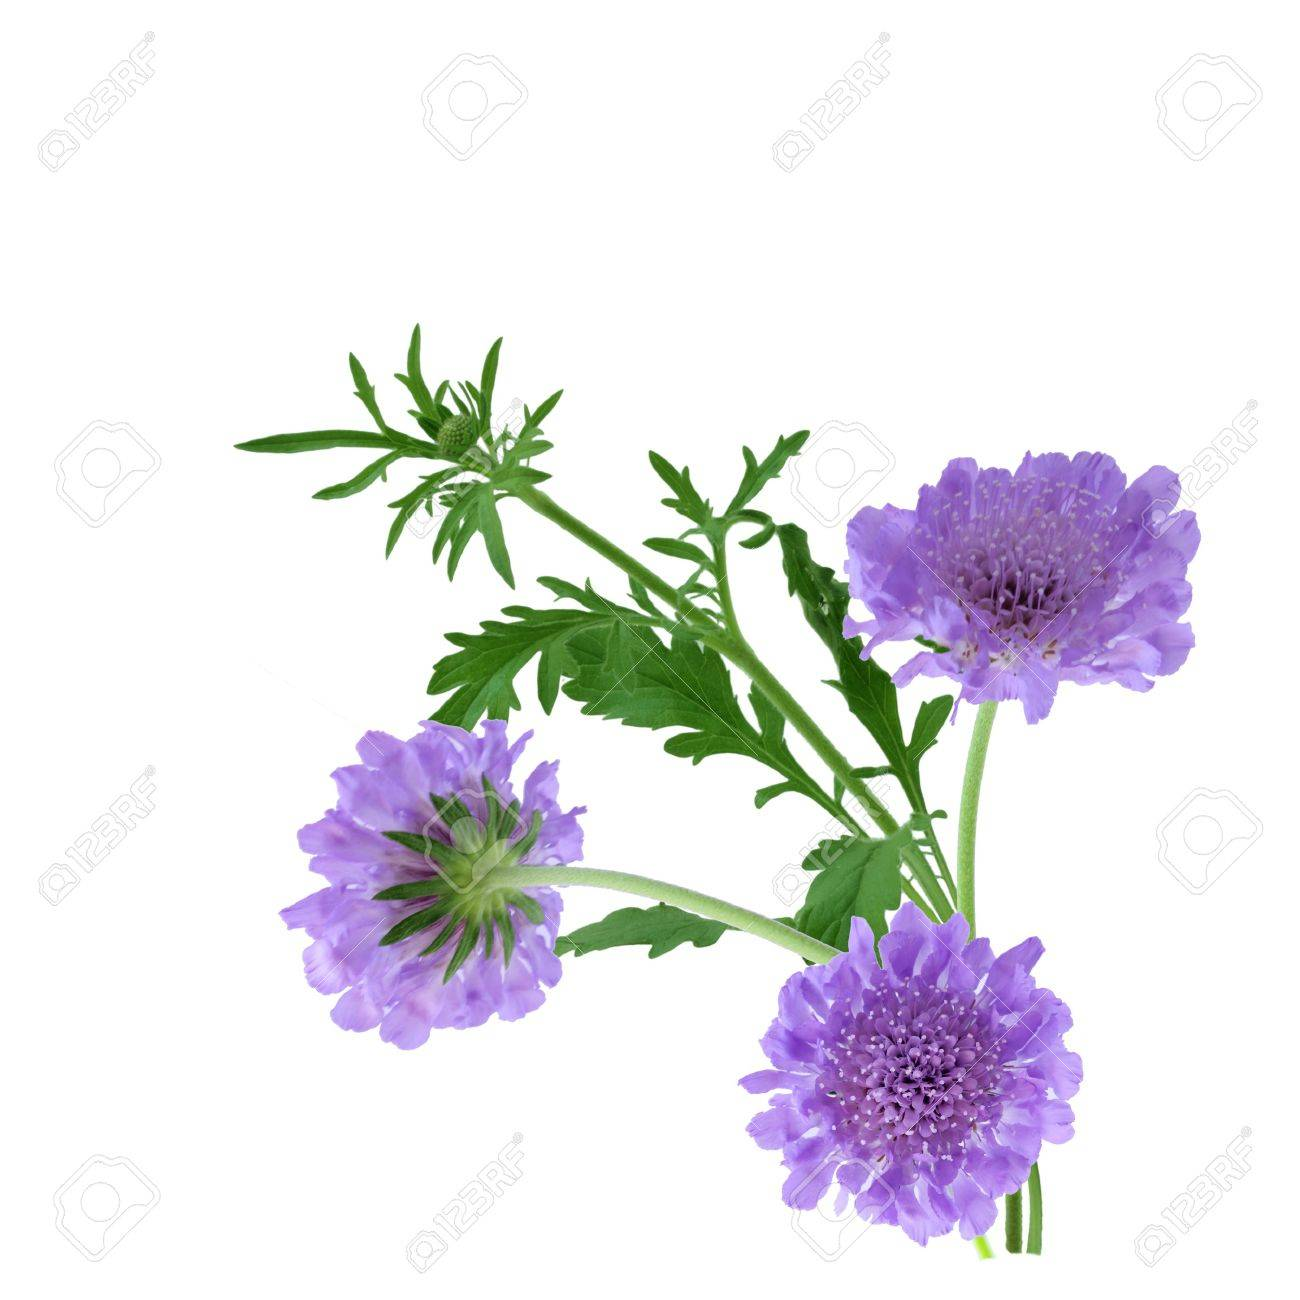 Perennial Pincushion Flowers Scabiosa Columbaria Isolated On Stock